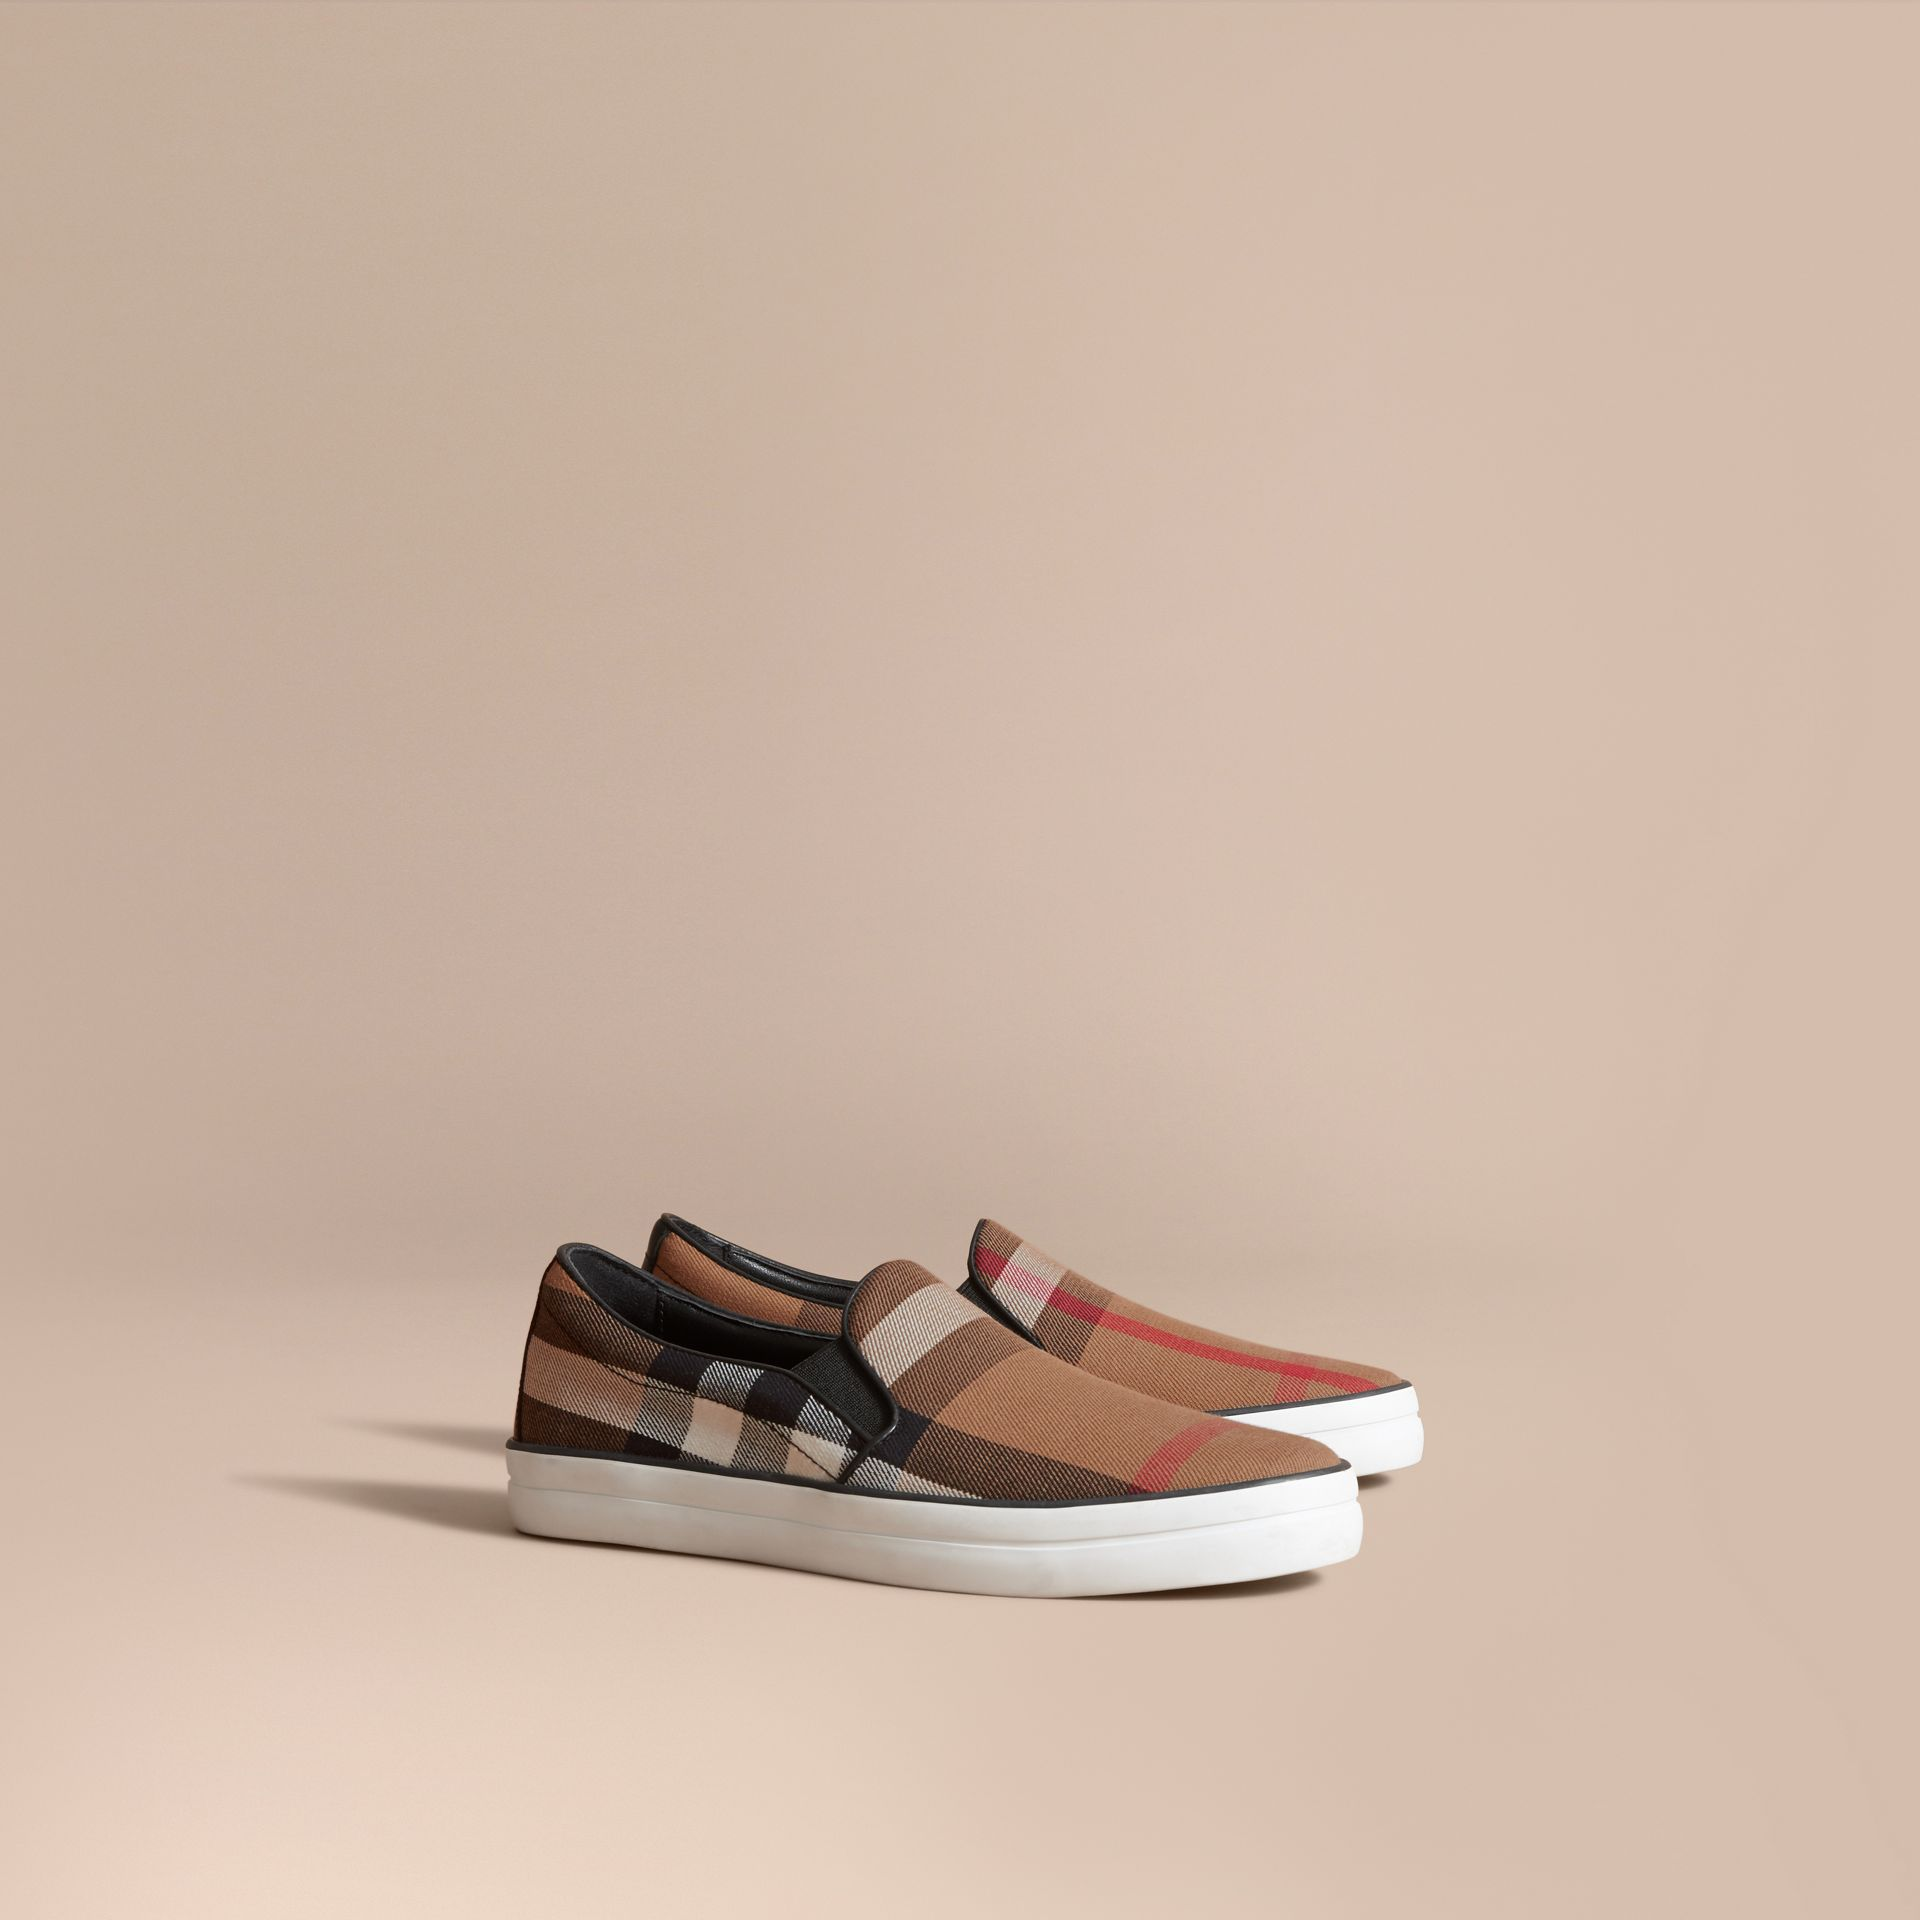 House Check and Leather Slip-on Sneakers in Classic - Women | Burberry Singapore - gallery image 0